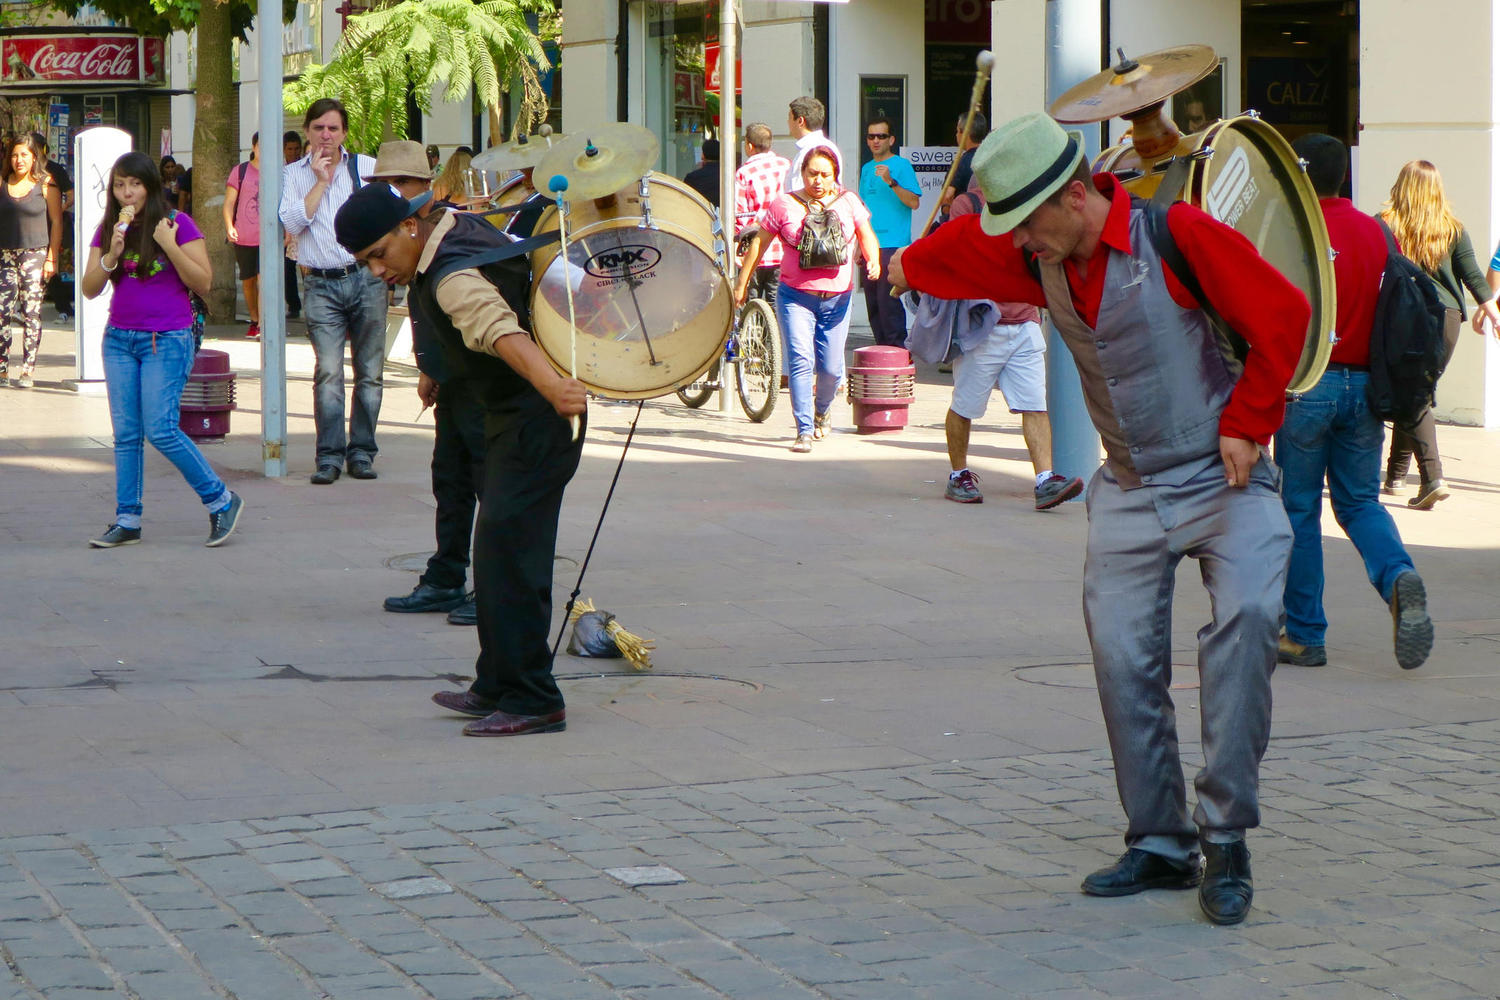 Street performers in the heart of downtown Santiago